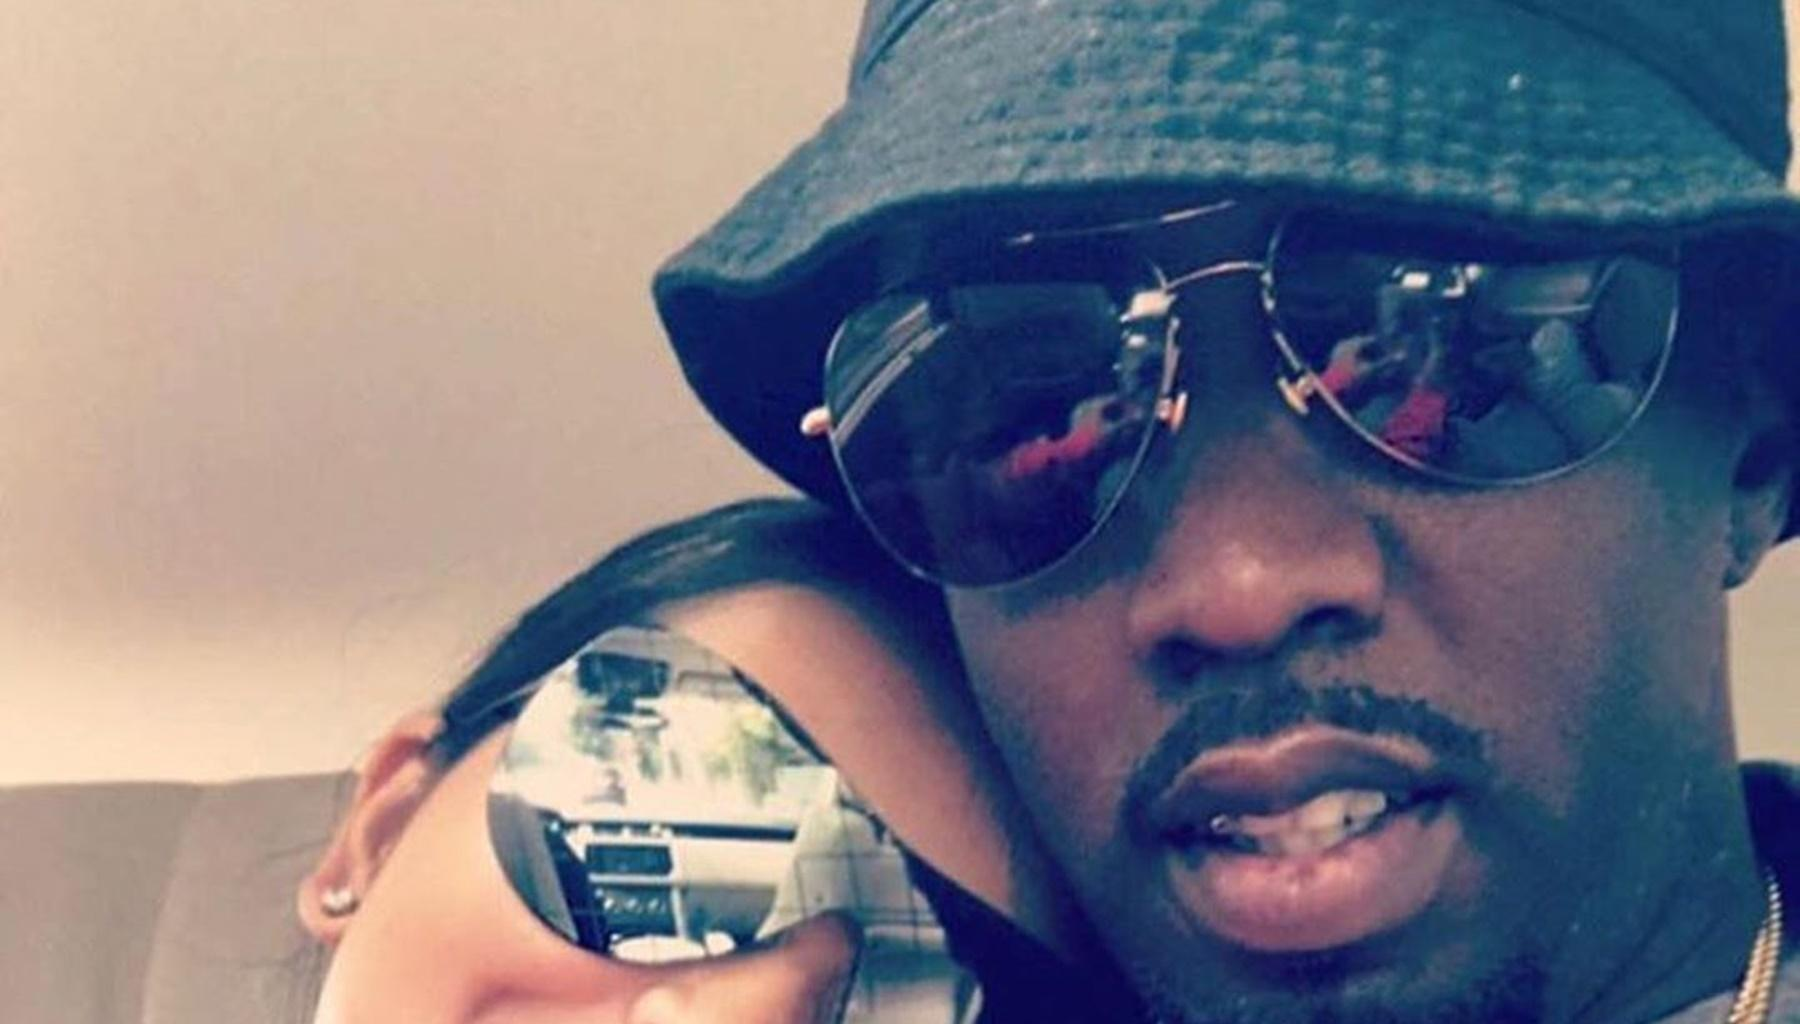 Diddy Debuts His New Girlfriend, Gina Huynh, In Raunchy Video As Rumors Claim He Cheated On Cassie With Her